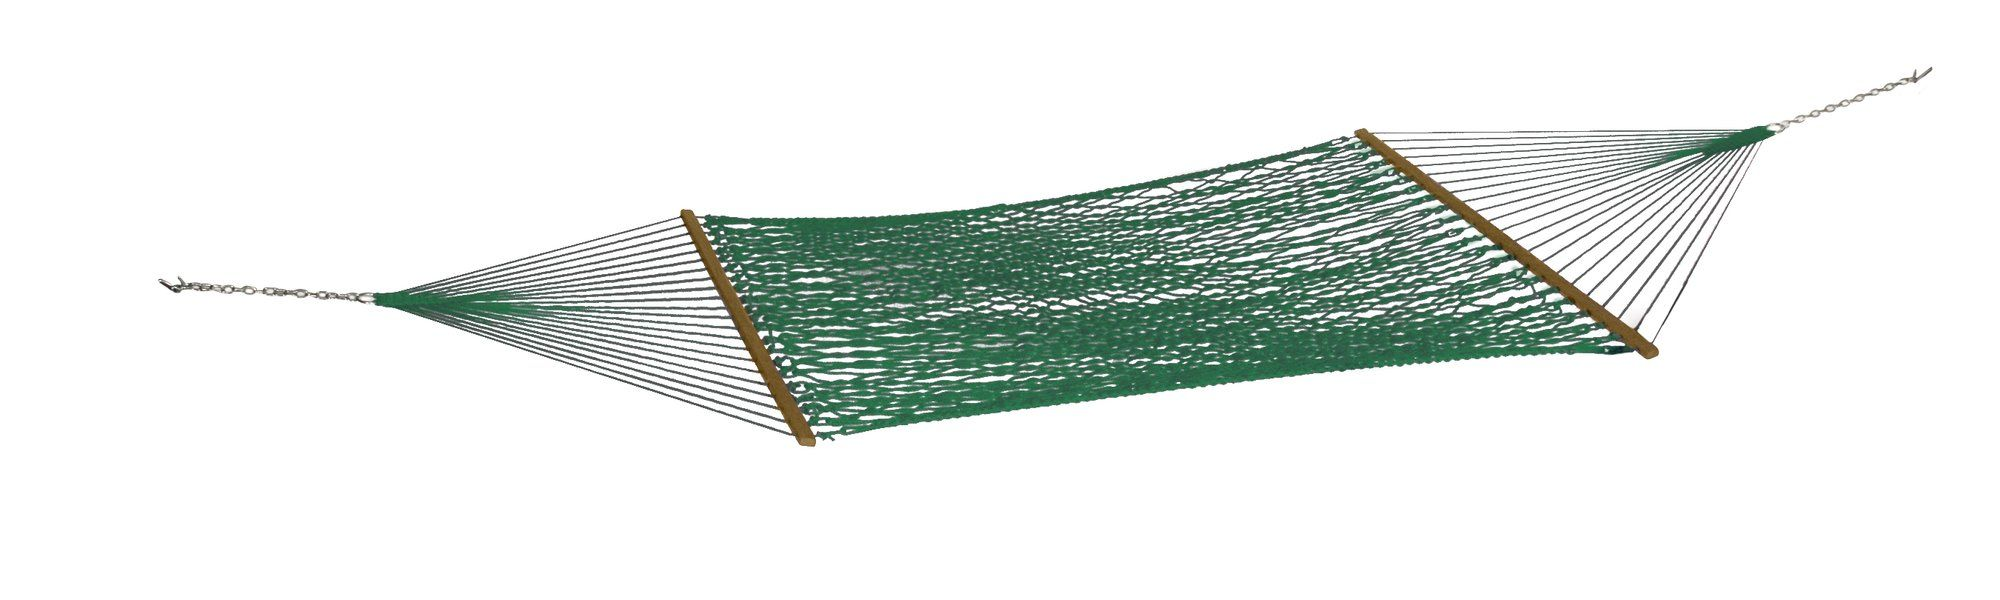 Phat tommy hand woven olefin rope hammock products pinterest